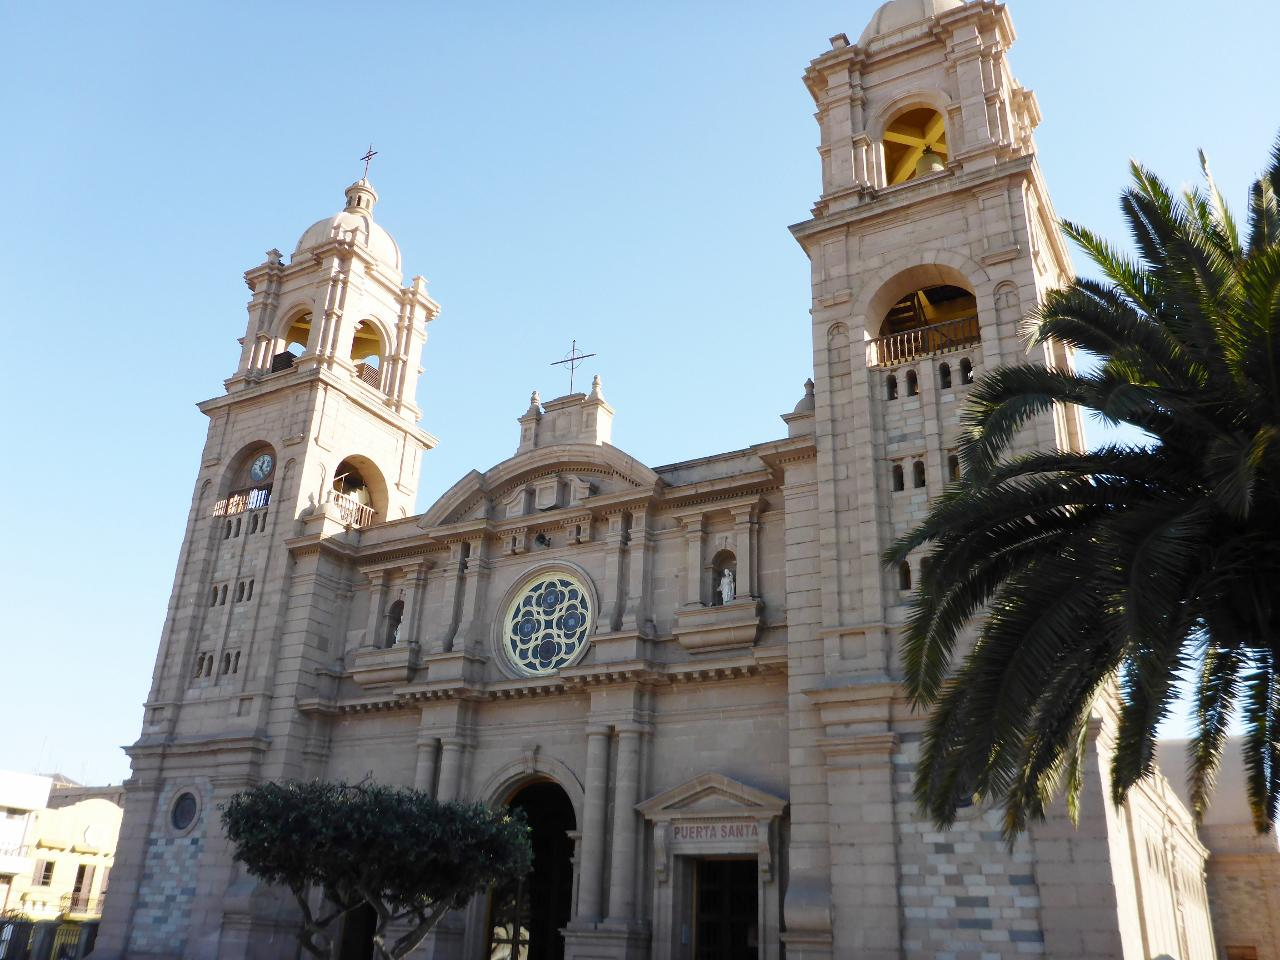 A church in Tacna, Peru.